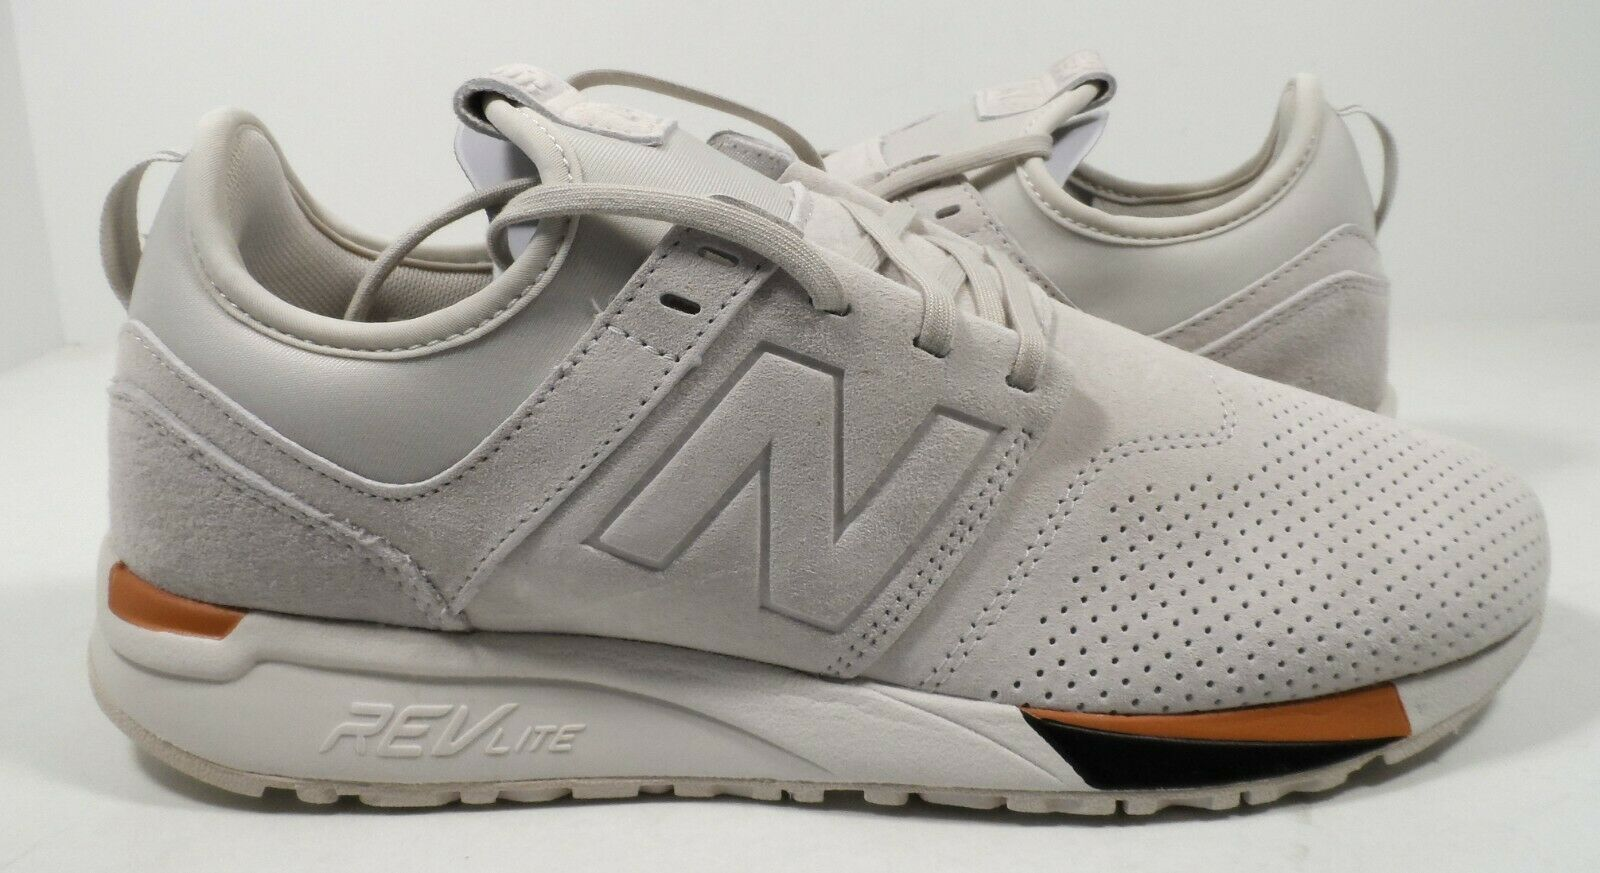 New Balance Men's MRL247WS Suede Lace up Sneaker Size 12